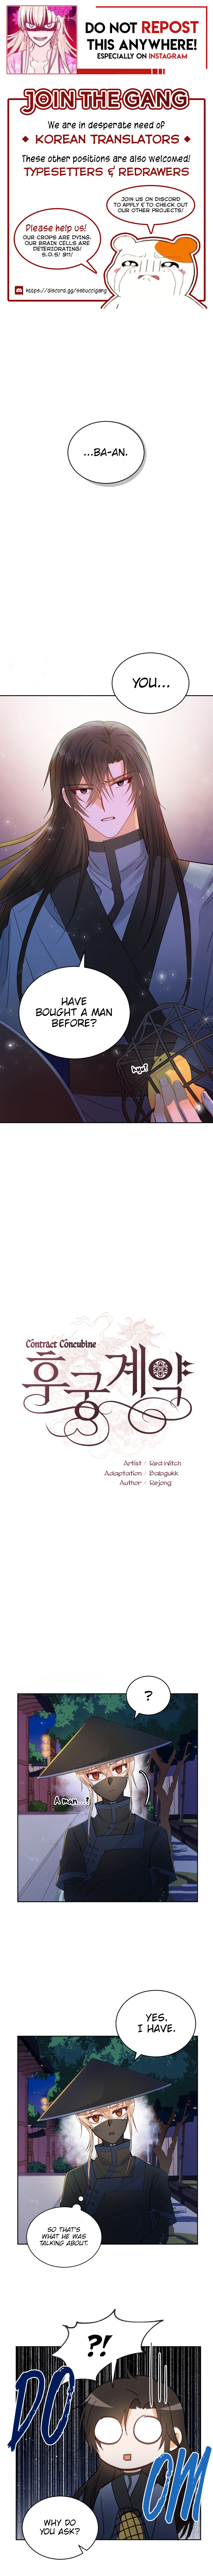 Manga Contract Concubine - Chapter 32 Page 1